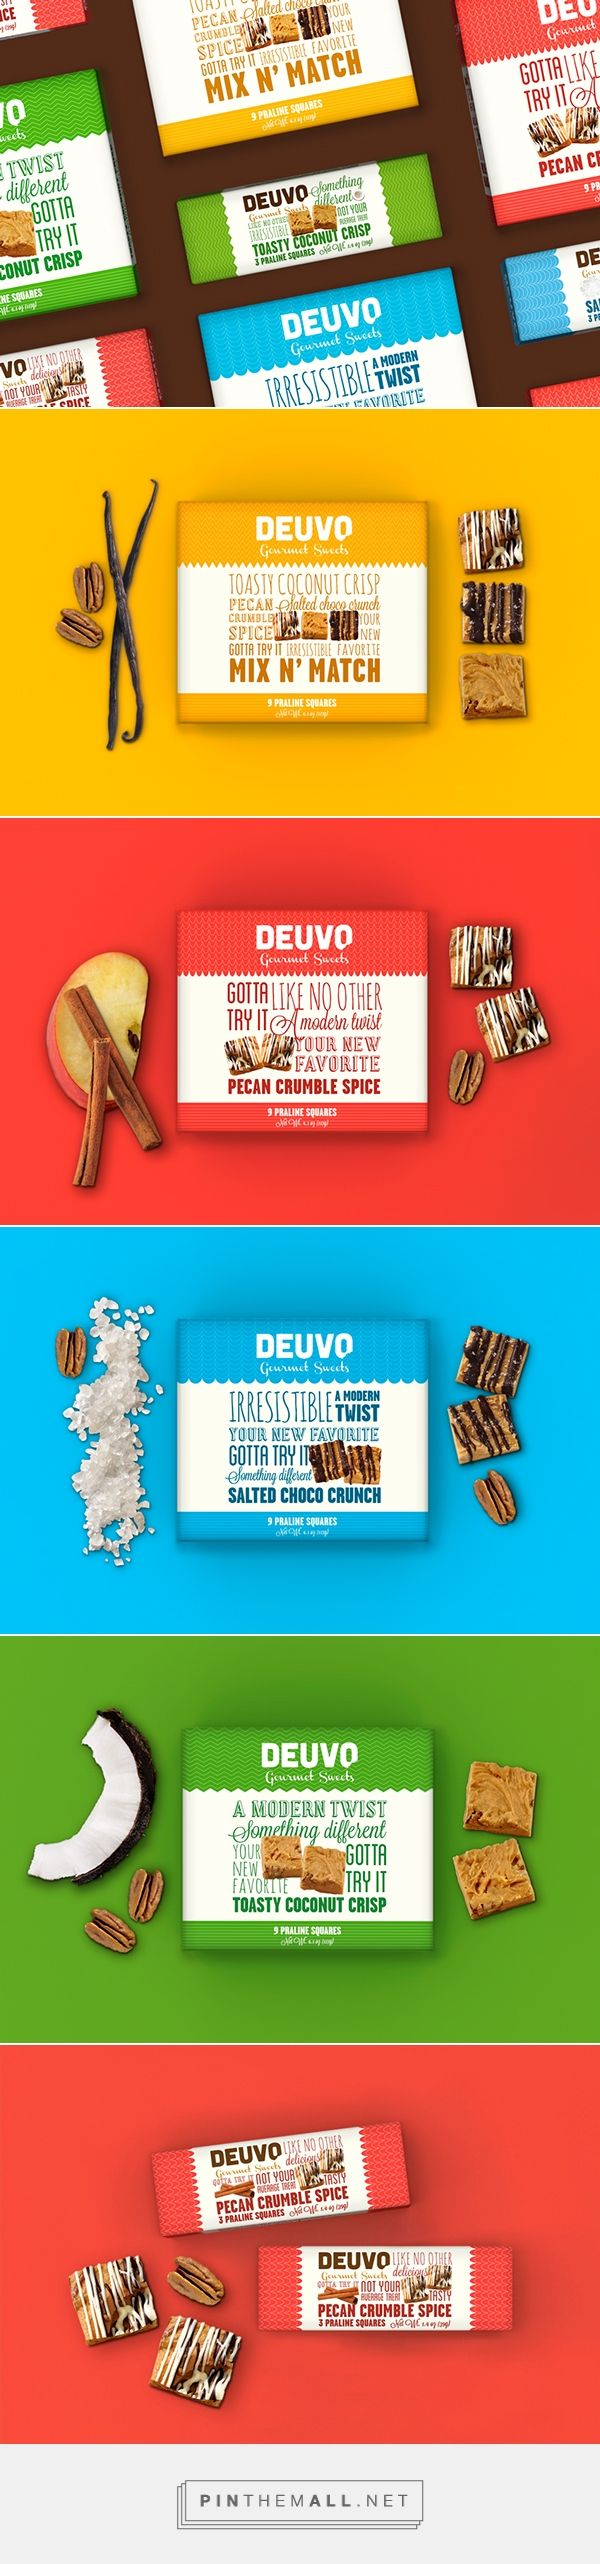 Deuvo on Behance / Deuvo Gourmet Sweets is an American family business specialised in handmade pralines with natural and premium ingredients.